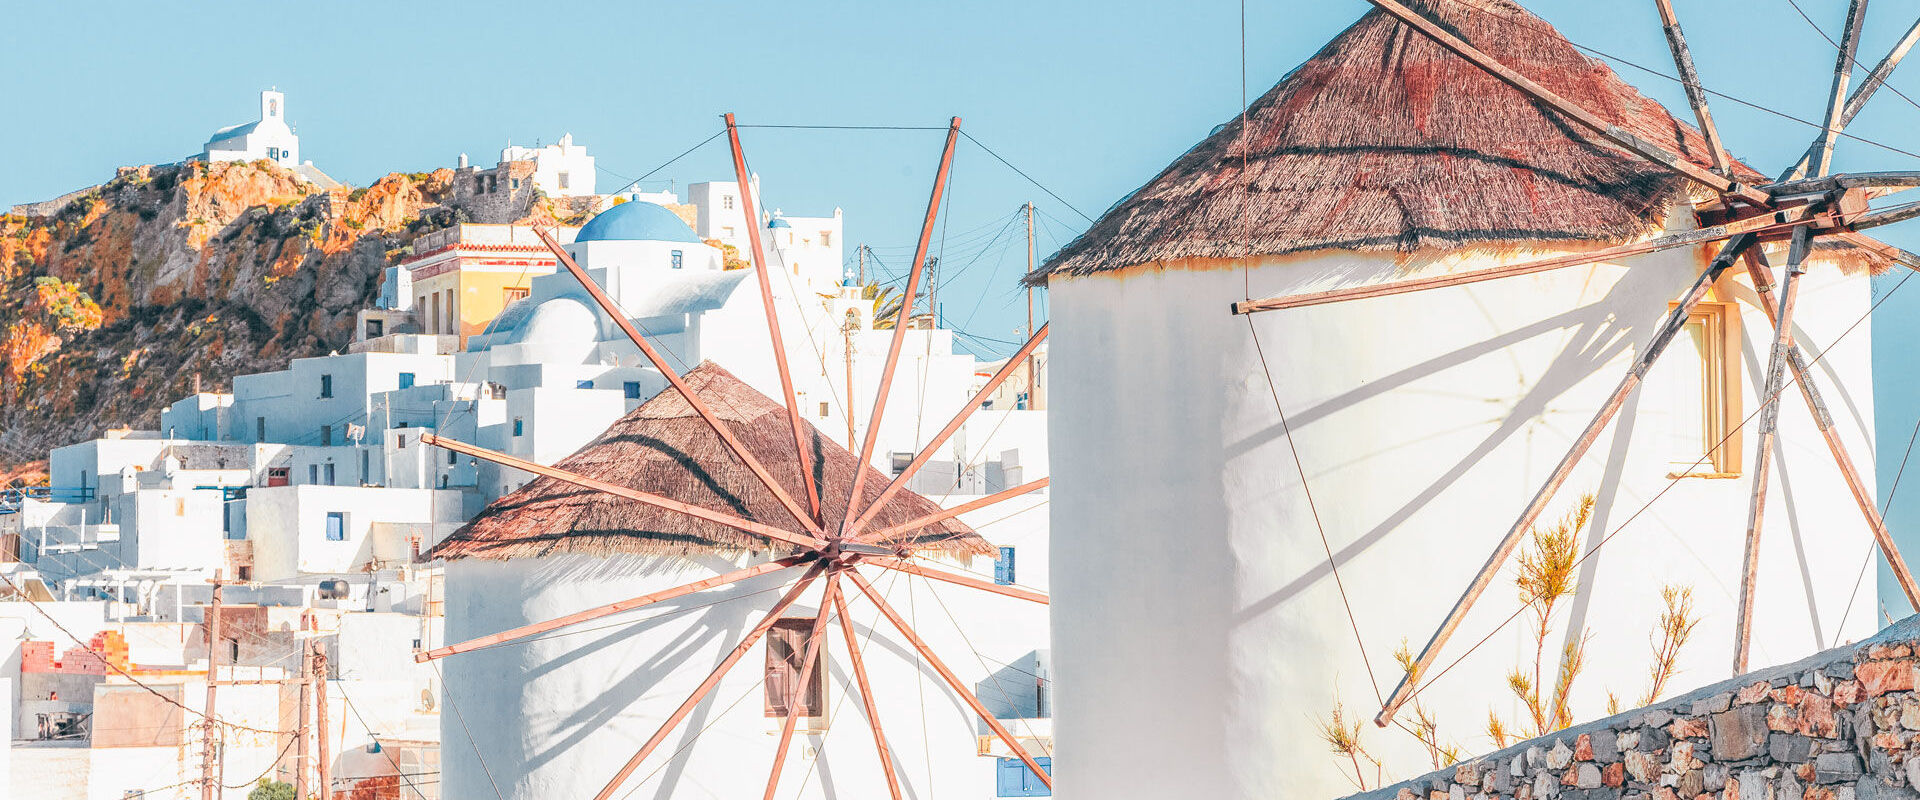 The iconic windmills of Serifos, where you'll stop for that postcard-perfect shot of town